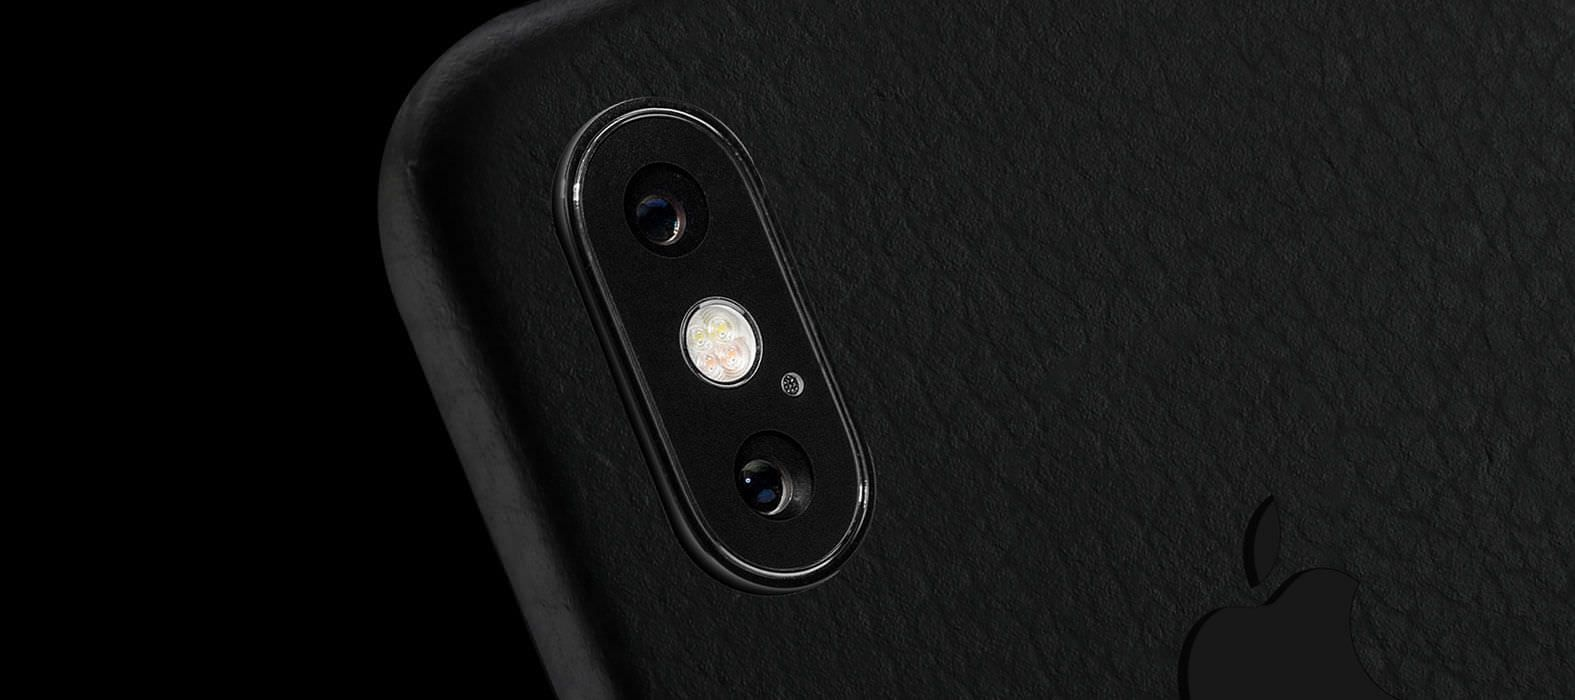 iPhone X Skins, Wraps & decals, Black Leather